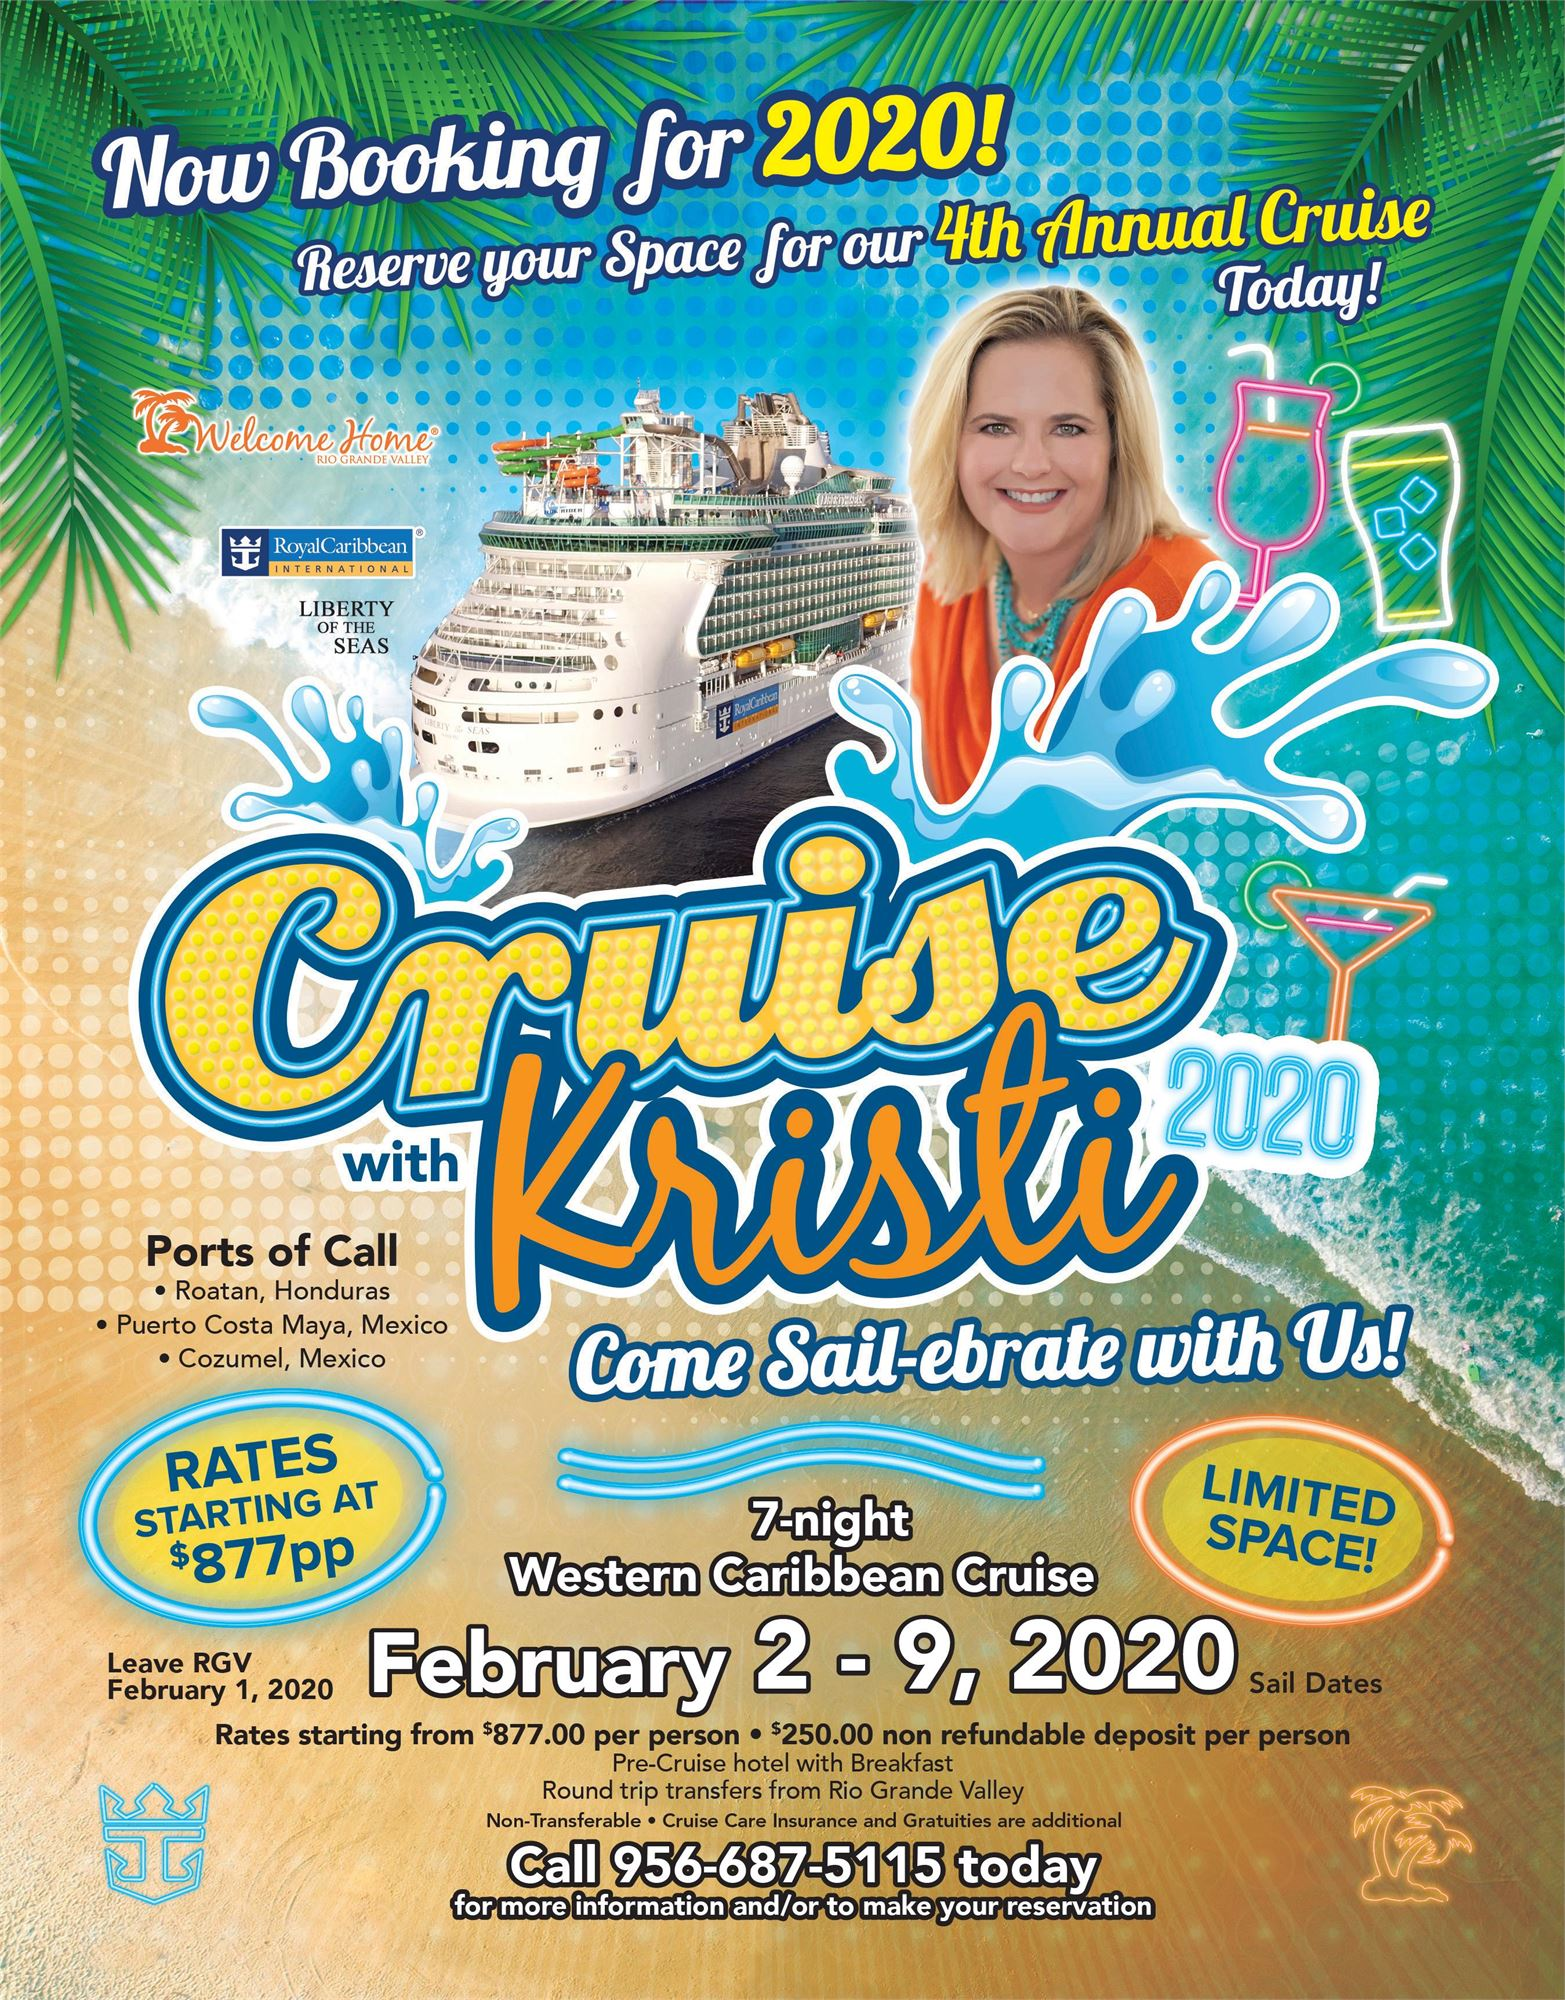 Best Mail Order Cookies 2020 2020 Cruise with Kristi